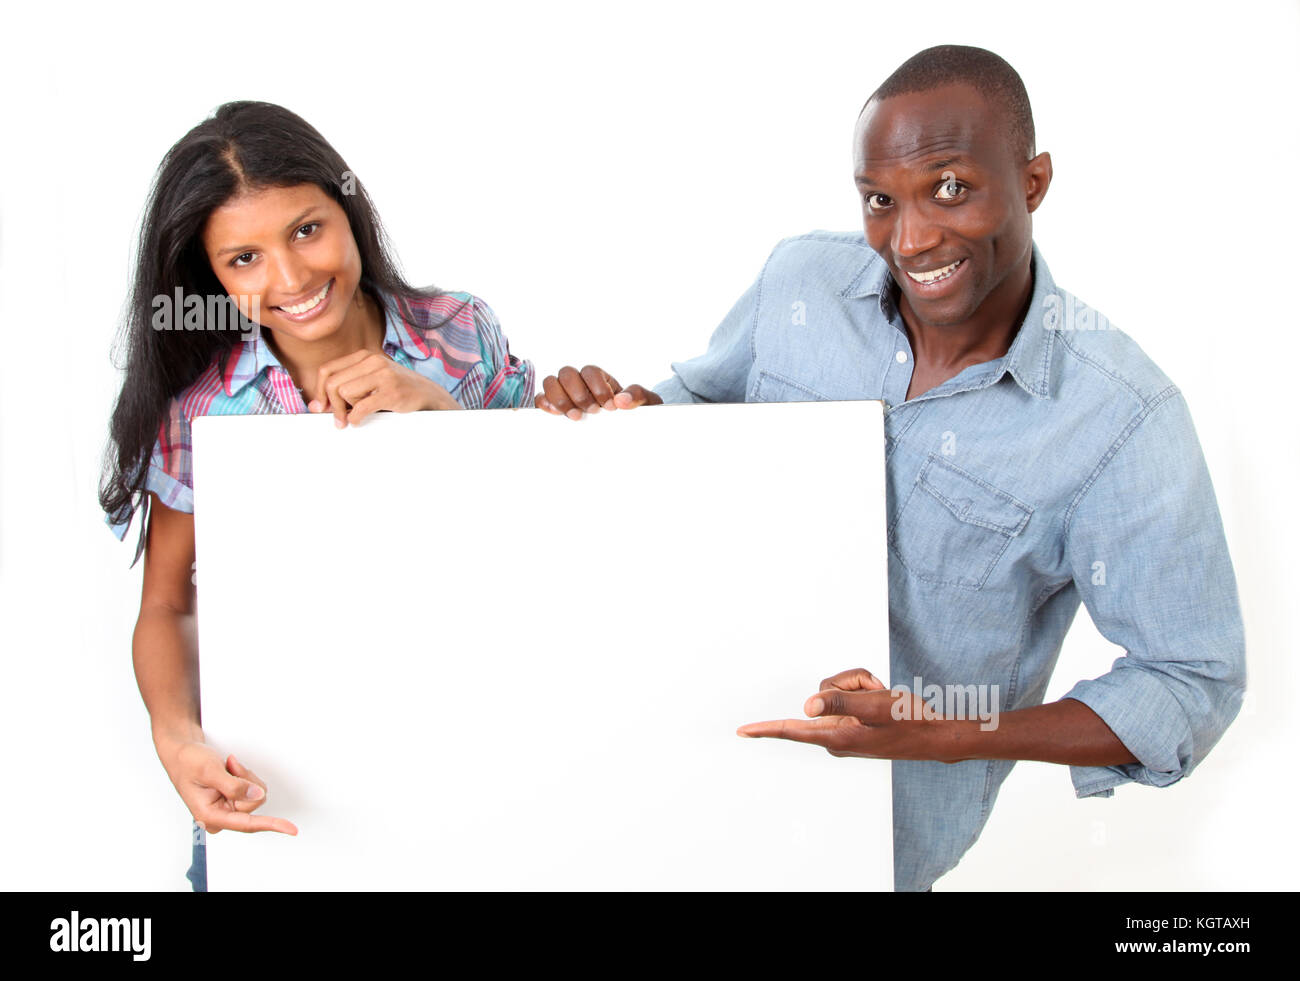 Cheerful couple showing message on whiteboard - Stock Image